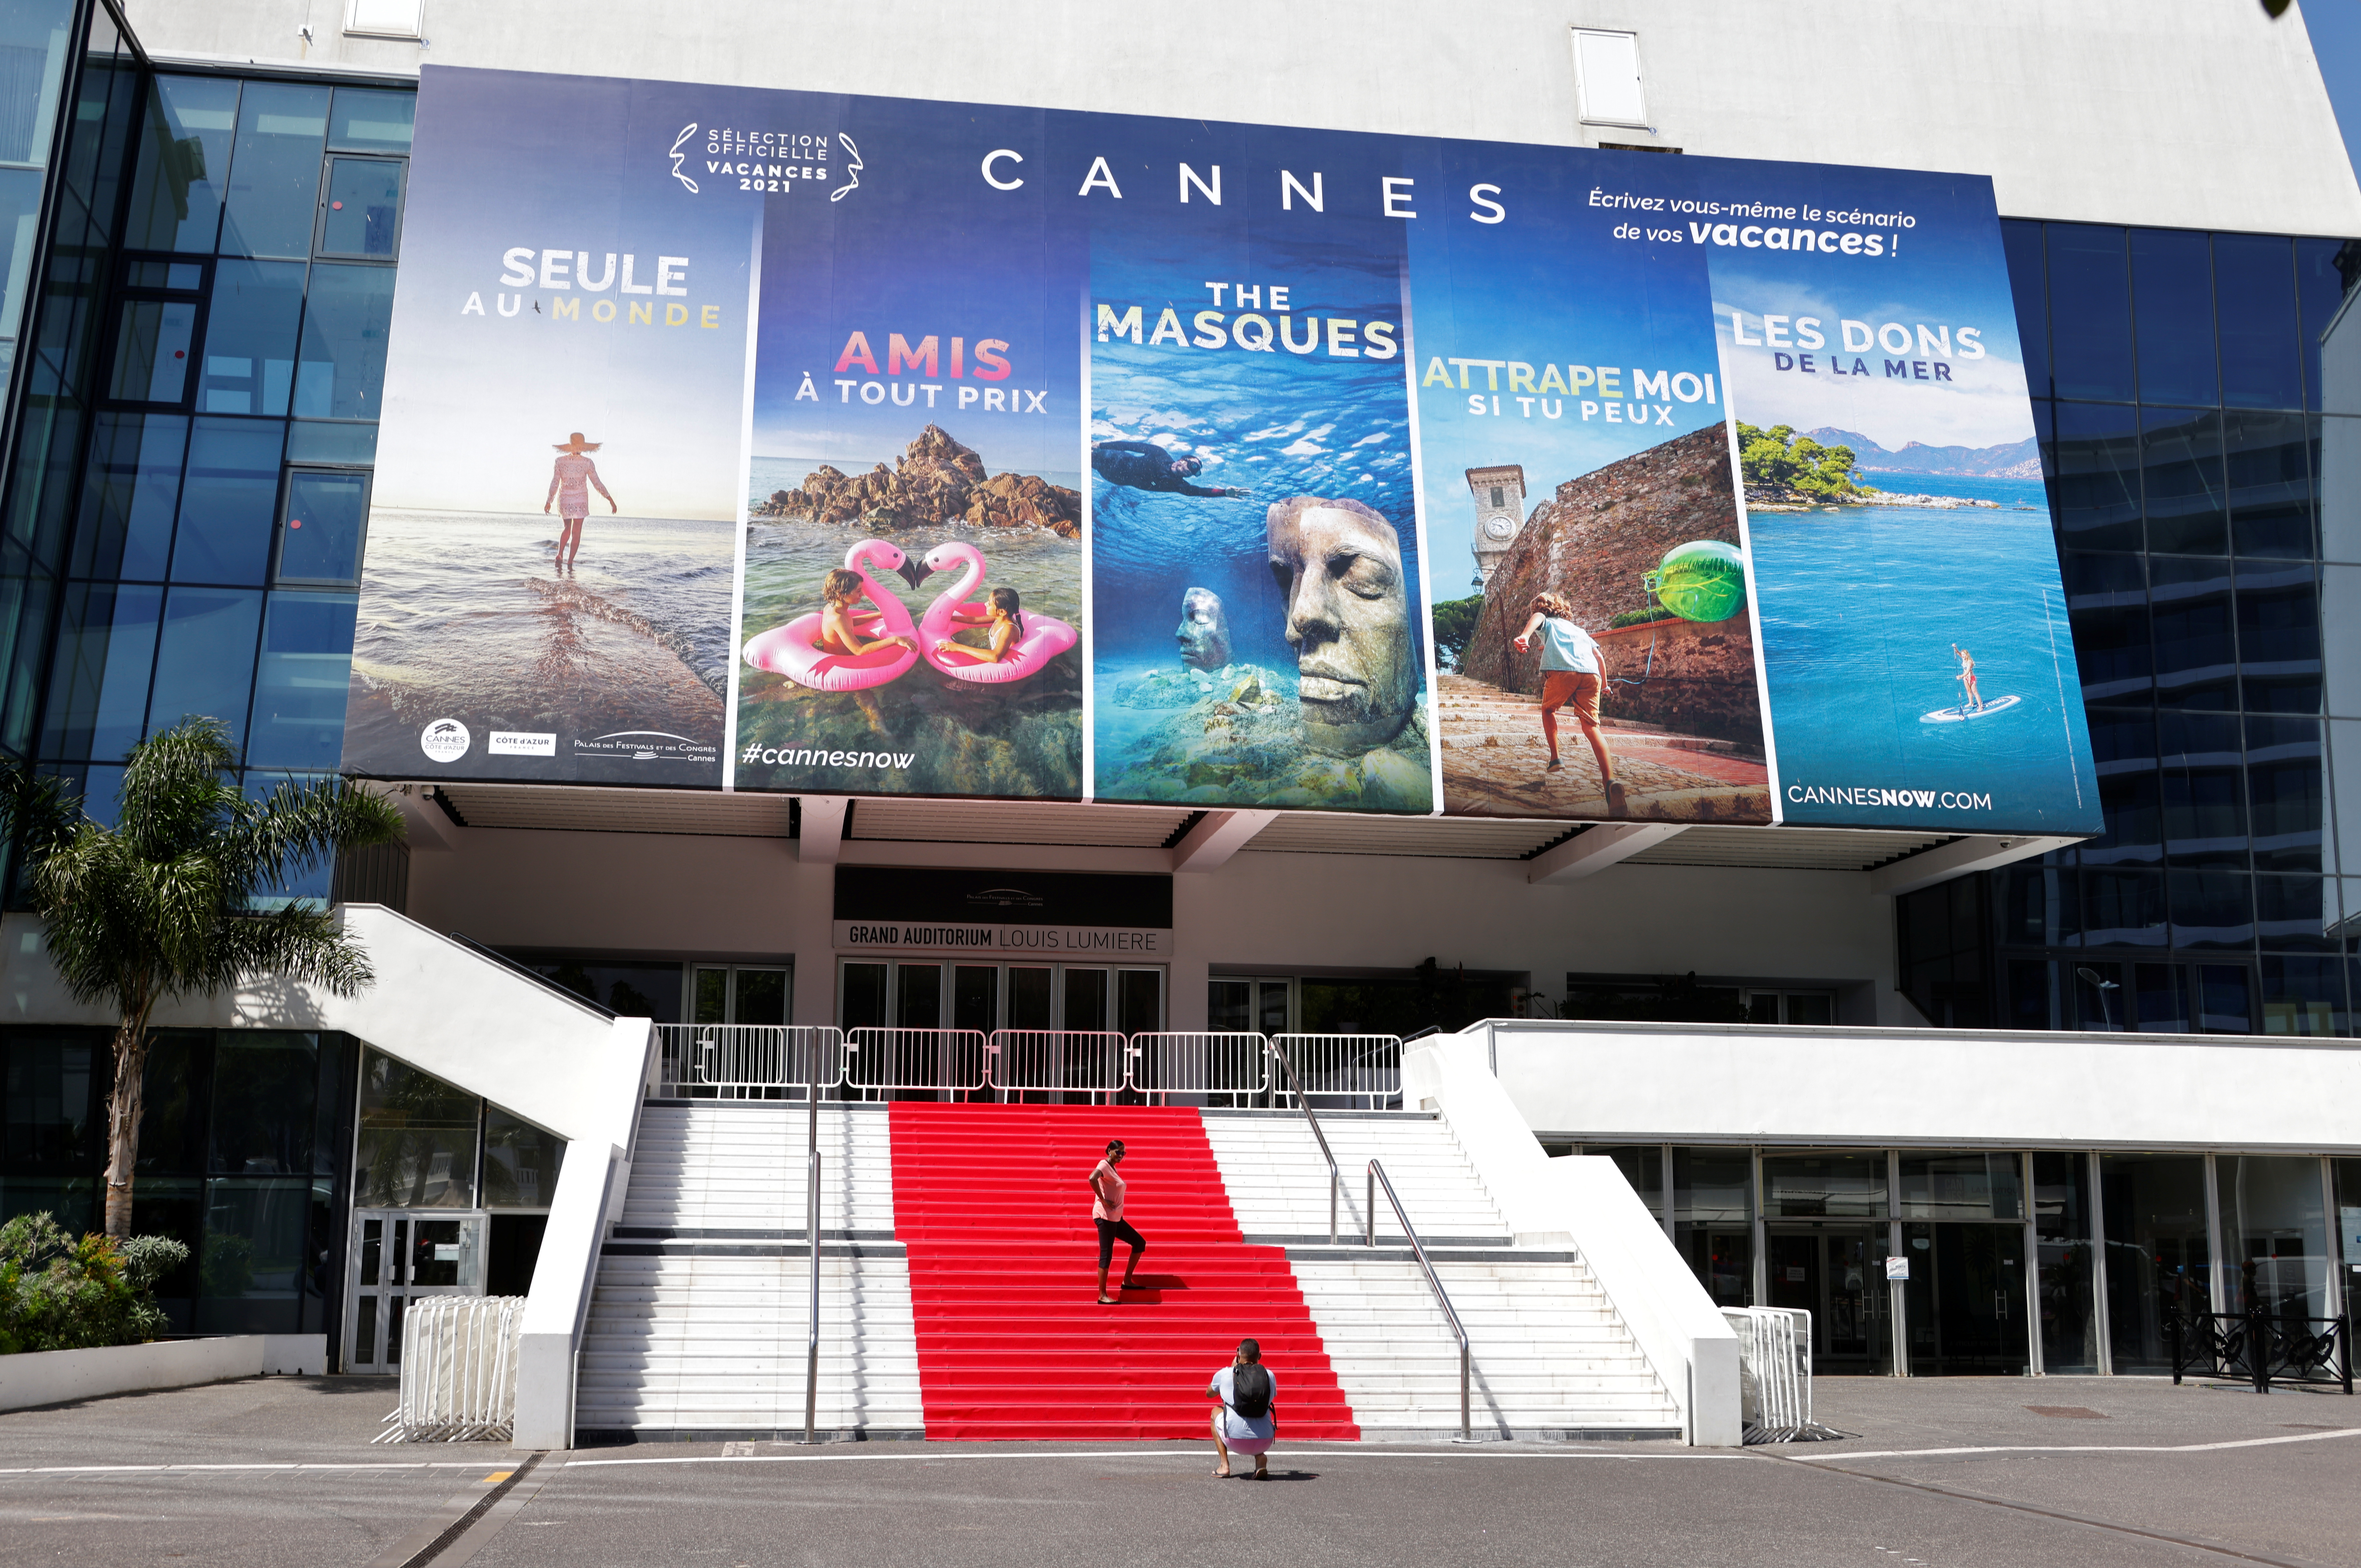 People stand on the red carpet of the Festival palace in Cannes as the French Riviera prepares for the 2021 edition of the Cannes Film Festival which will take place next July, in France, June 3, 2021.  REUTERS/Eric Gaillard